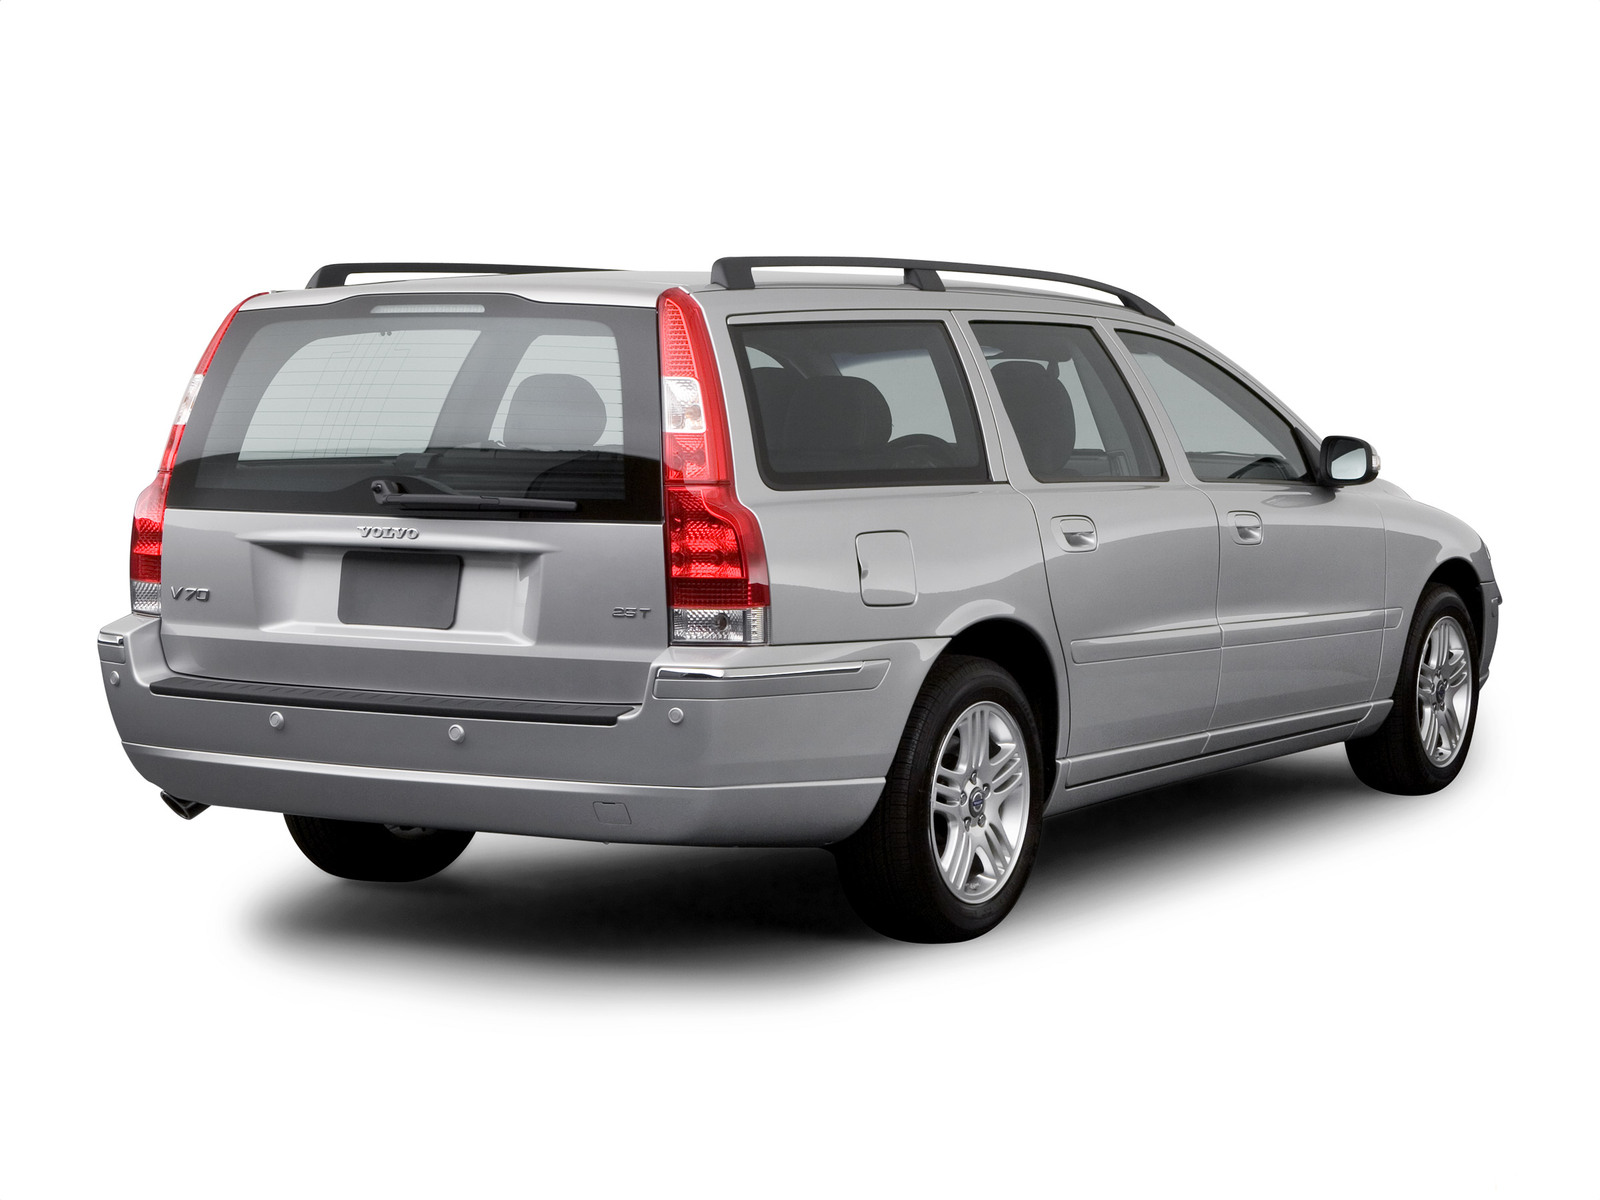 2 x new gas struts suit volvo v70 xc70 tailgate 2000 to. Black Bedroom Furniture Sets. Home Design Ideas